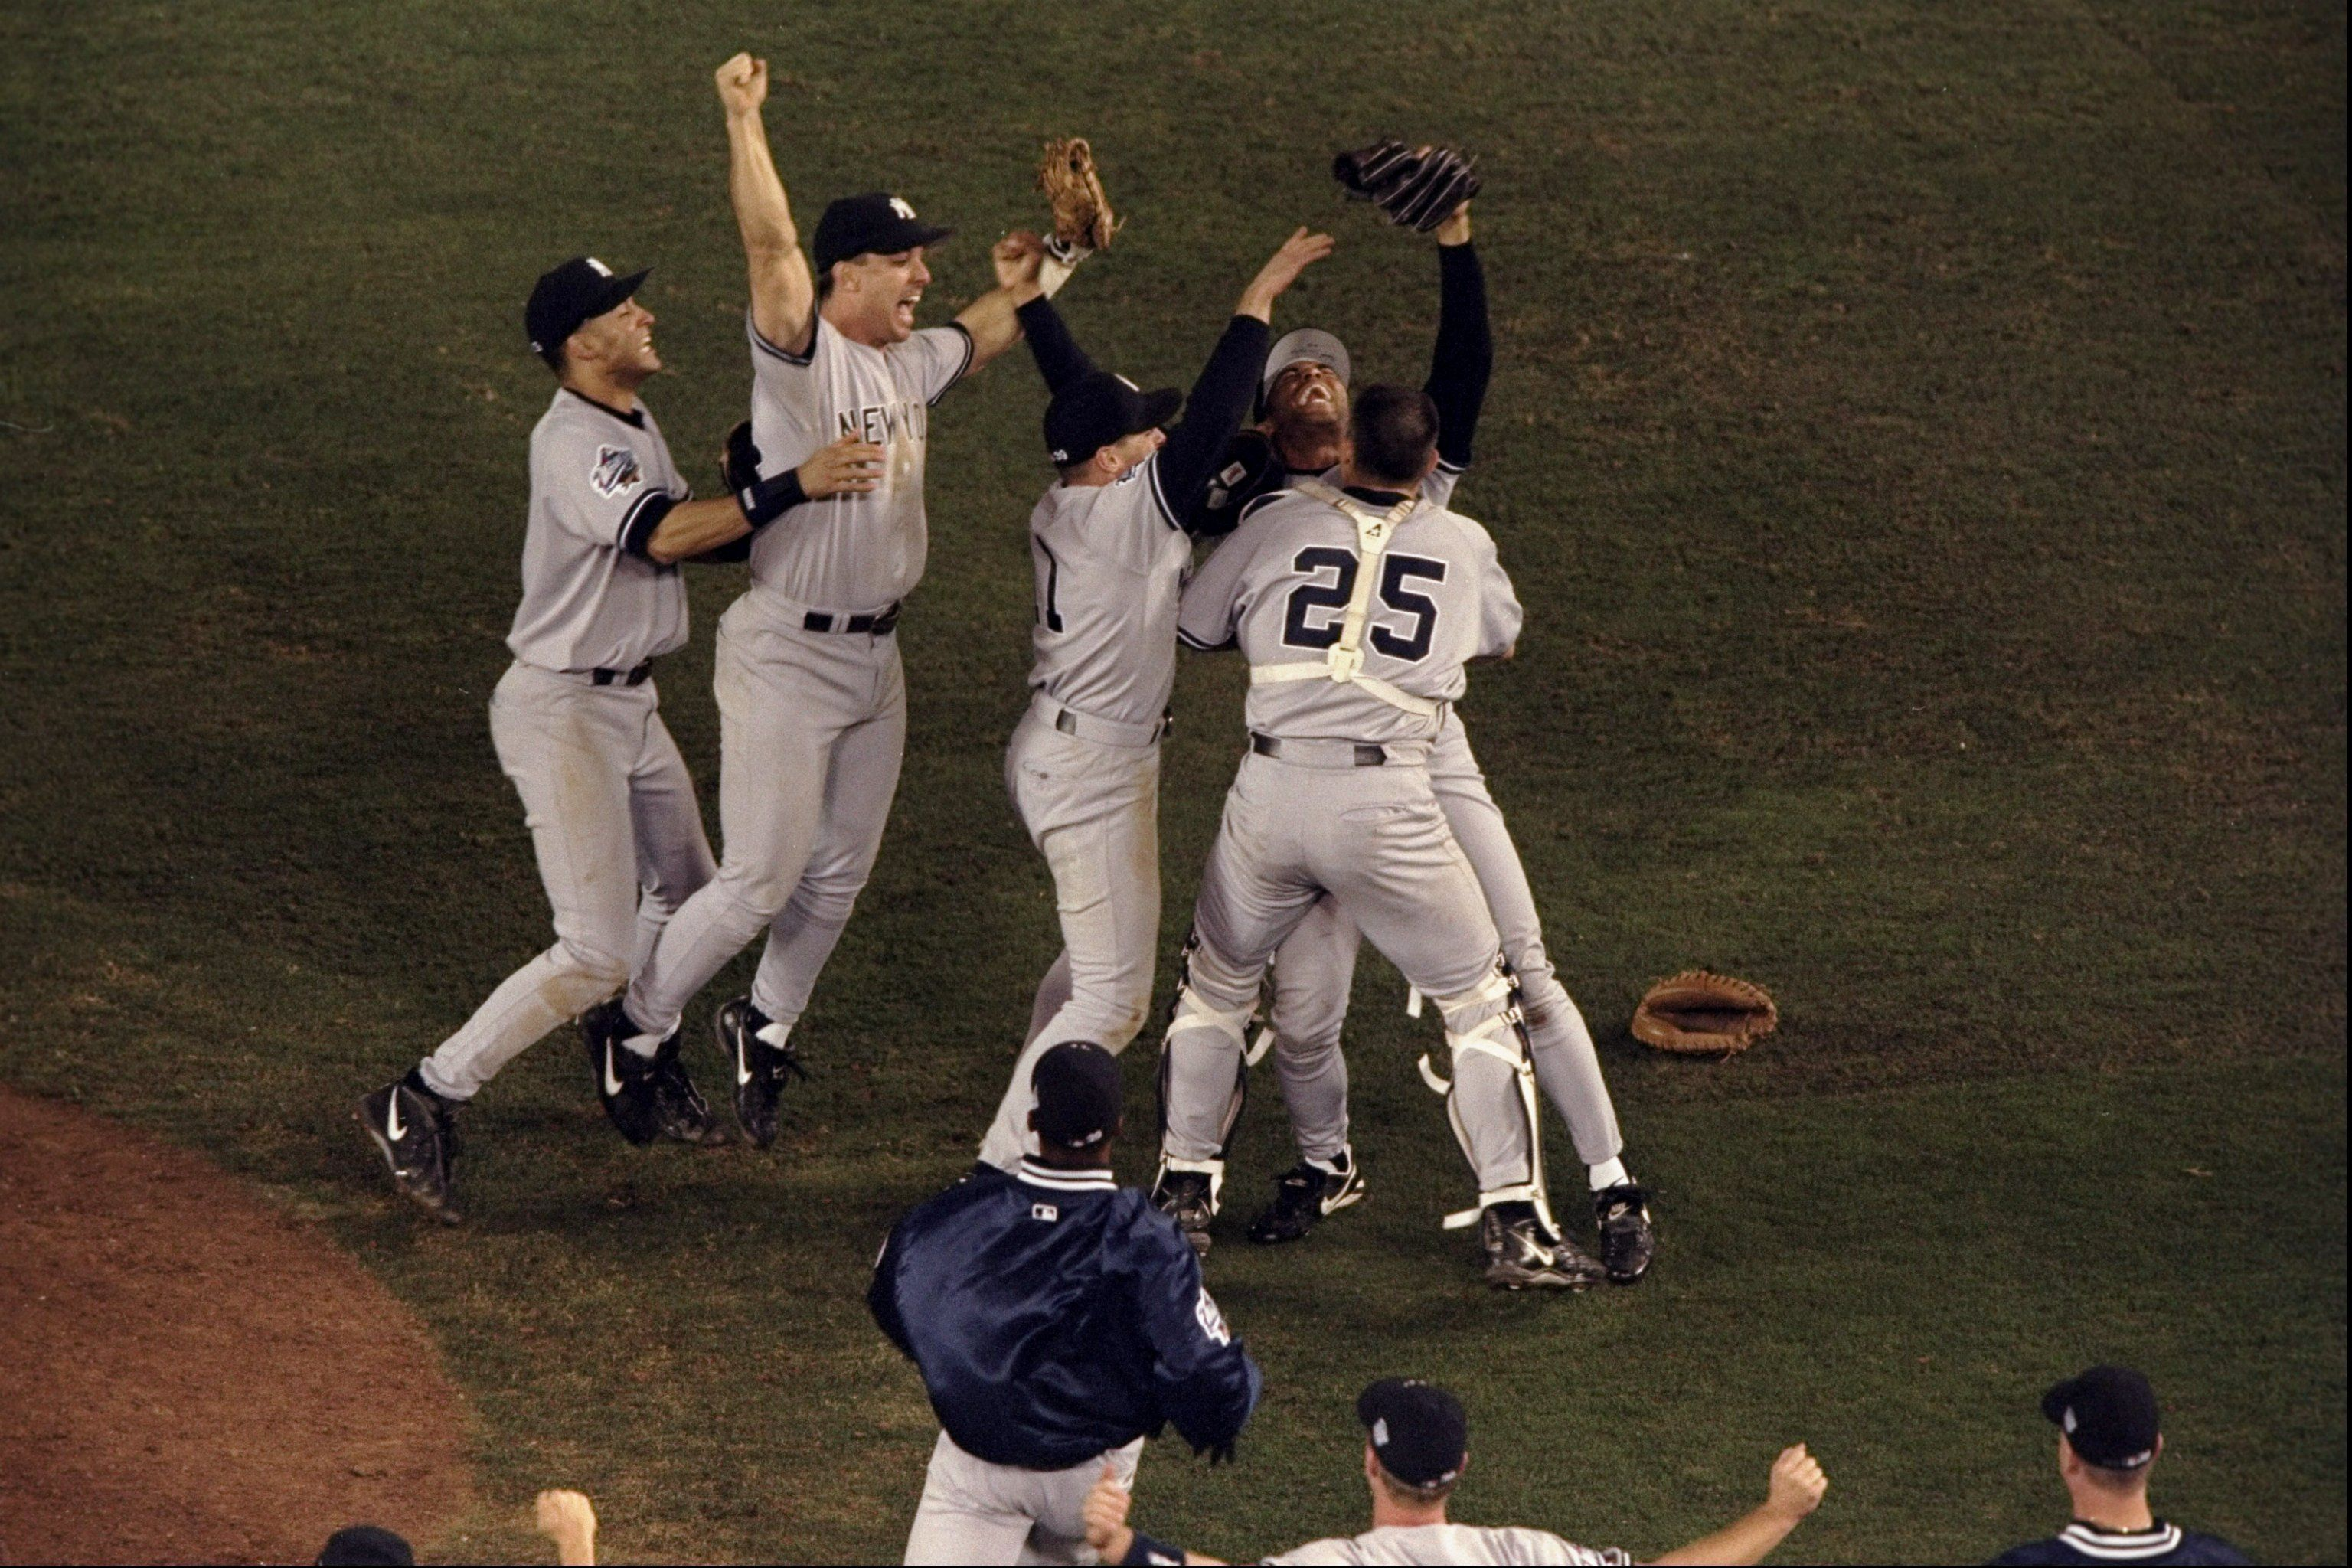 General view of the New York Yankees in celebration following the 1998 World Series Game 4 against the San Diego